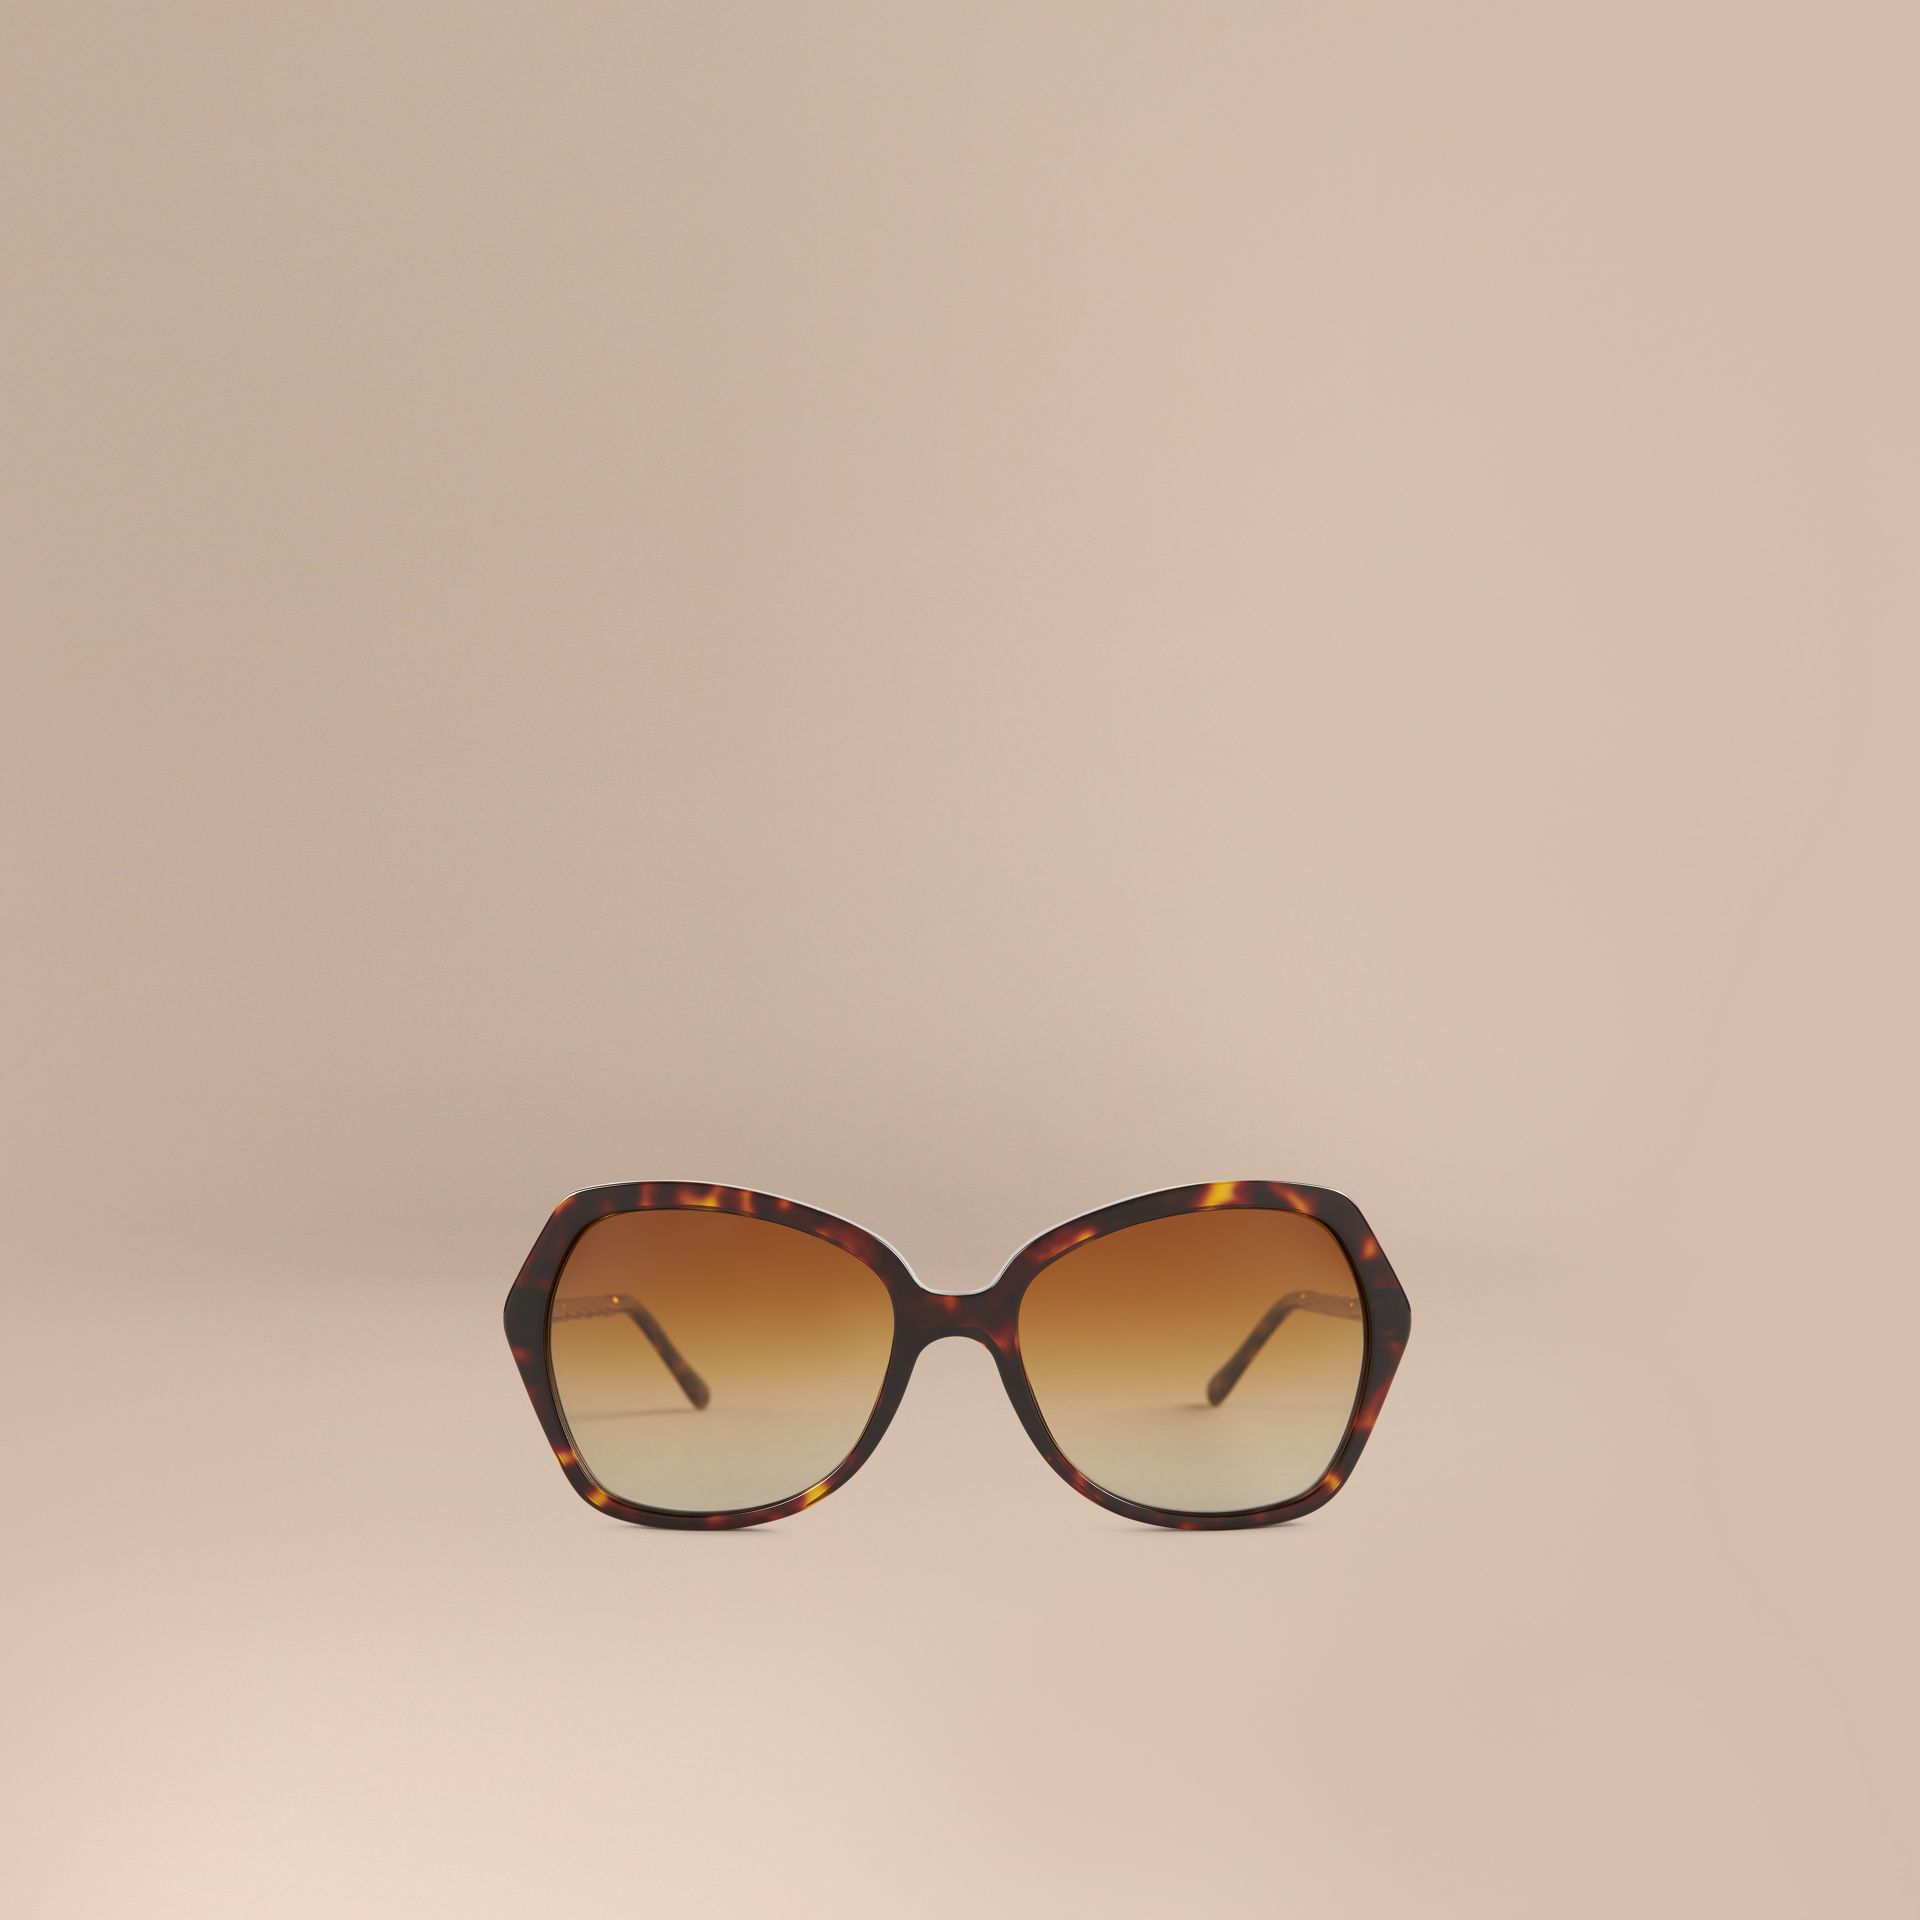 Tortoiseshell Gabardine Collection Oversize Square Frame Sunglasses Tortoiseshell - gallery image 2